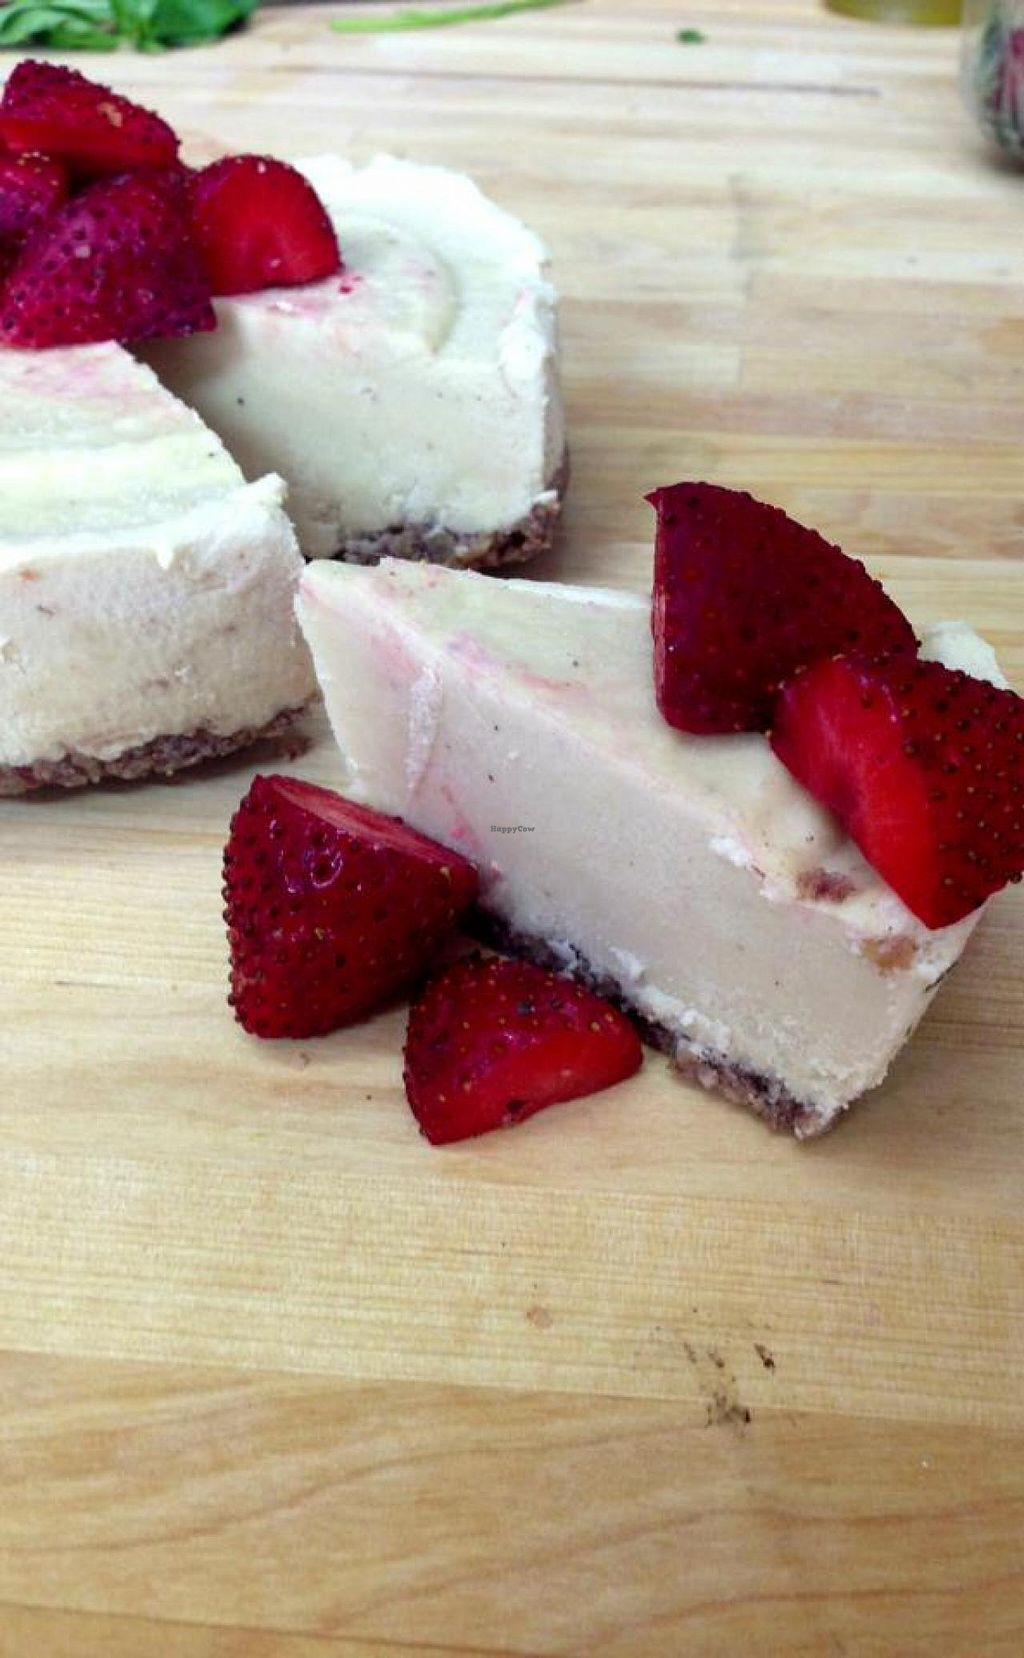 """Photo of CLOSED: Yuli's Lunch Box  by <a href=""""/members/profile/yossiv"""">yossiv</a> <br/>Cashew cream cake garnished with straberries <br/> May 16, 2014  - <a href='/contact/abuse/image/47397/70098'>Report</a>"""